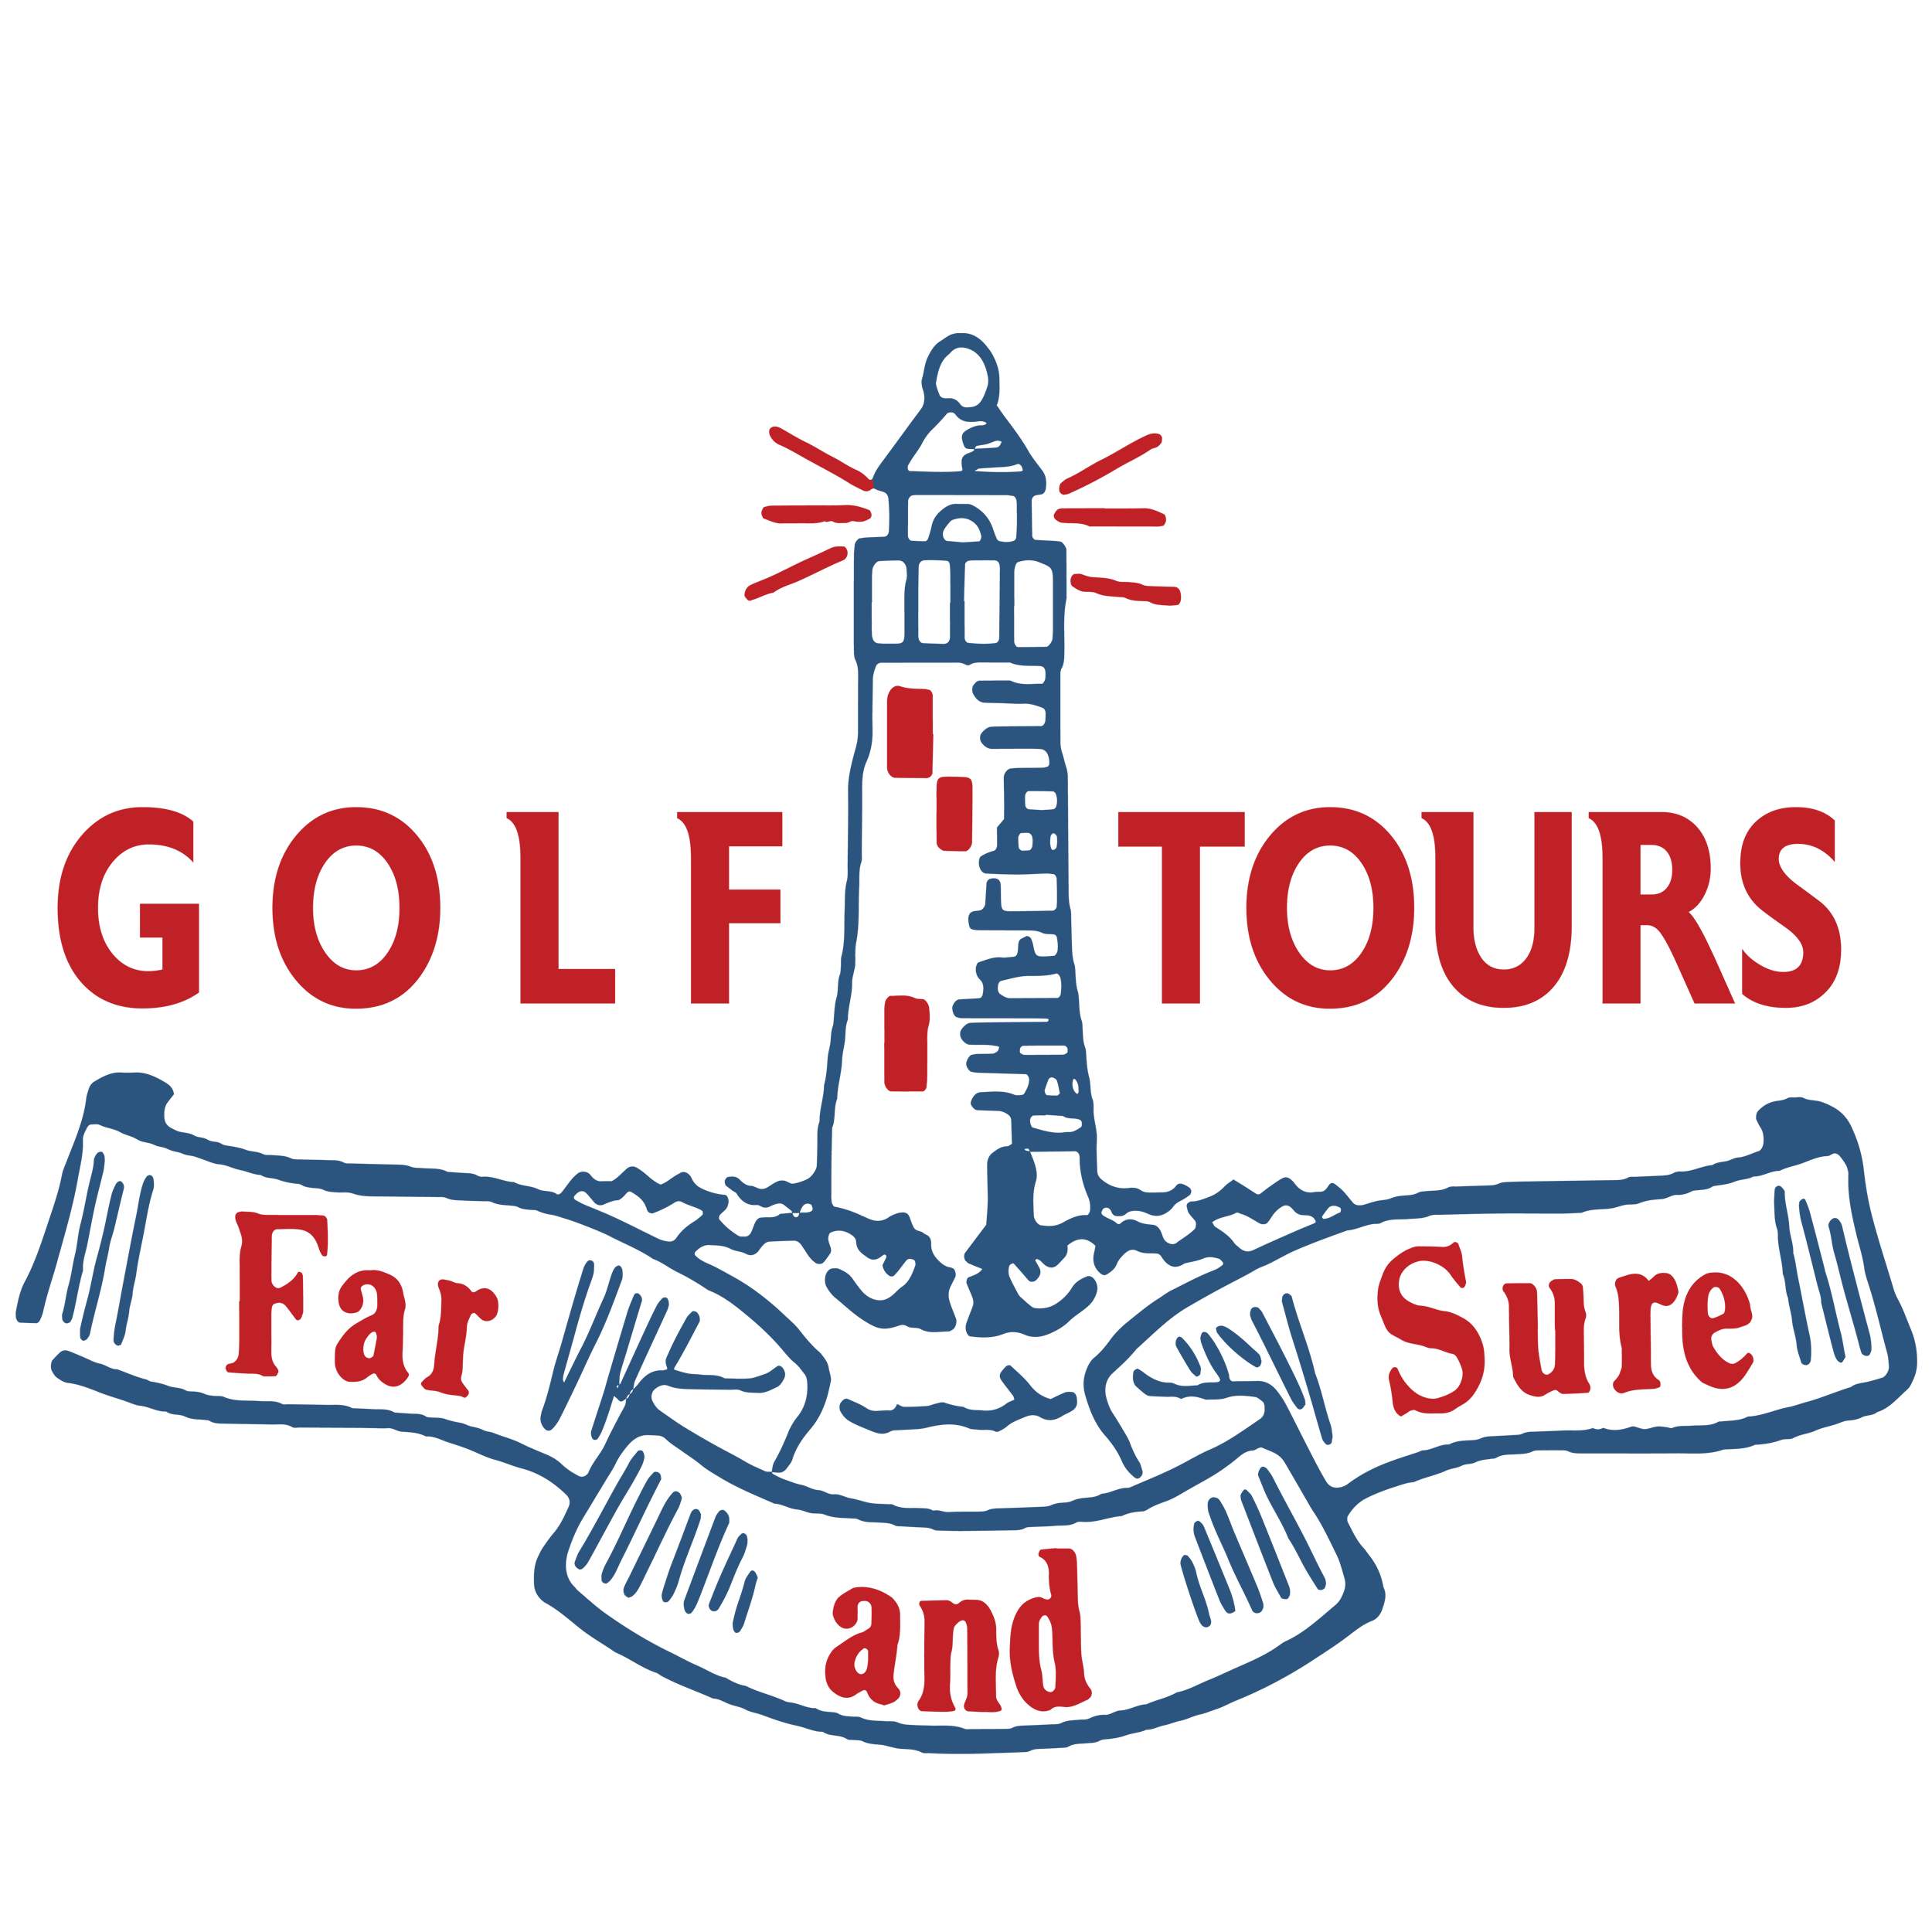 Far and Sure Golf Tours's Logo